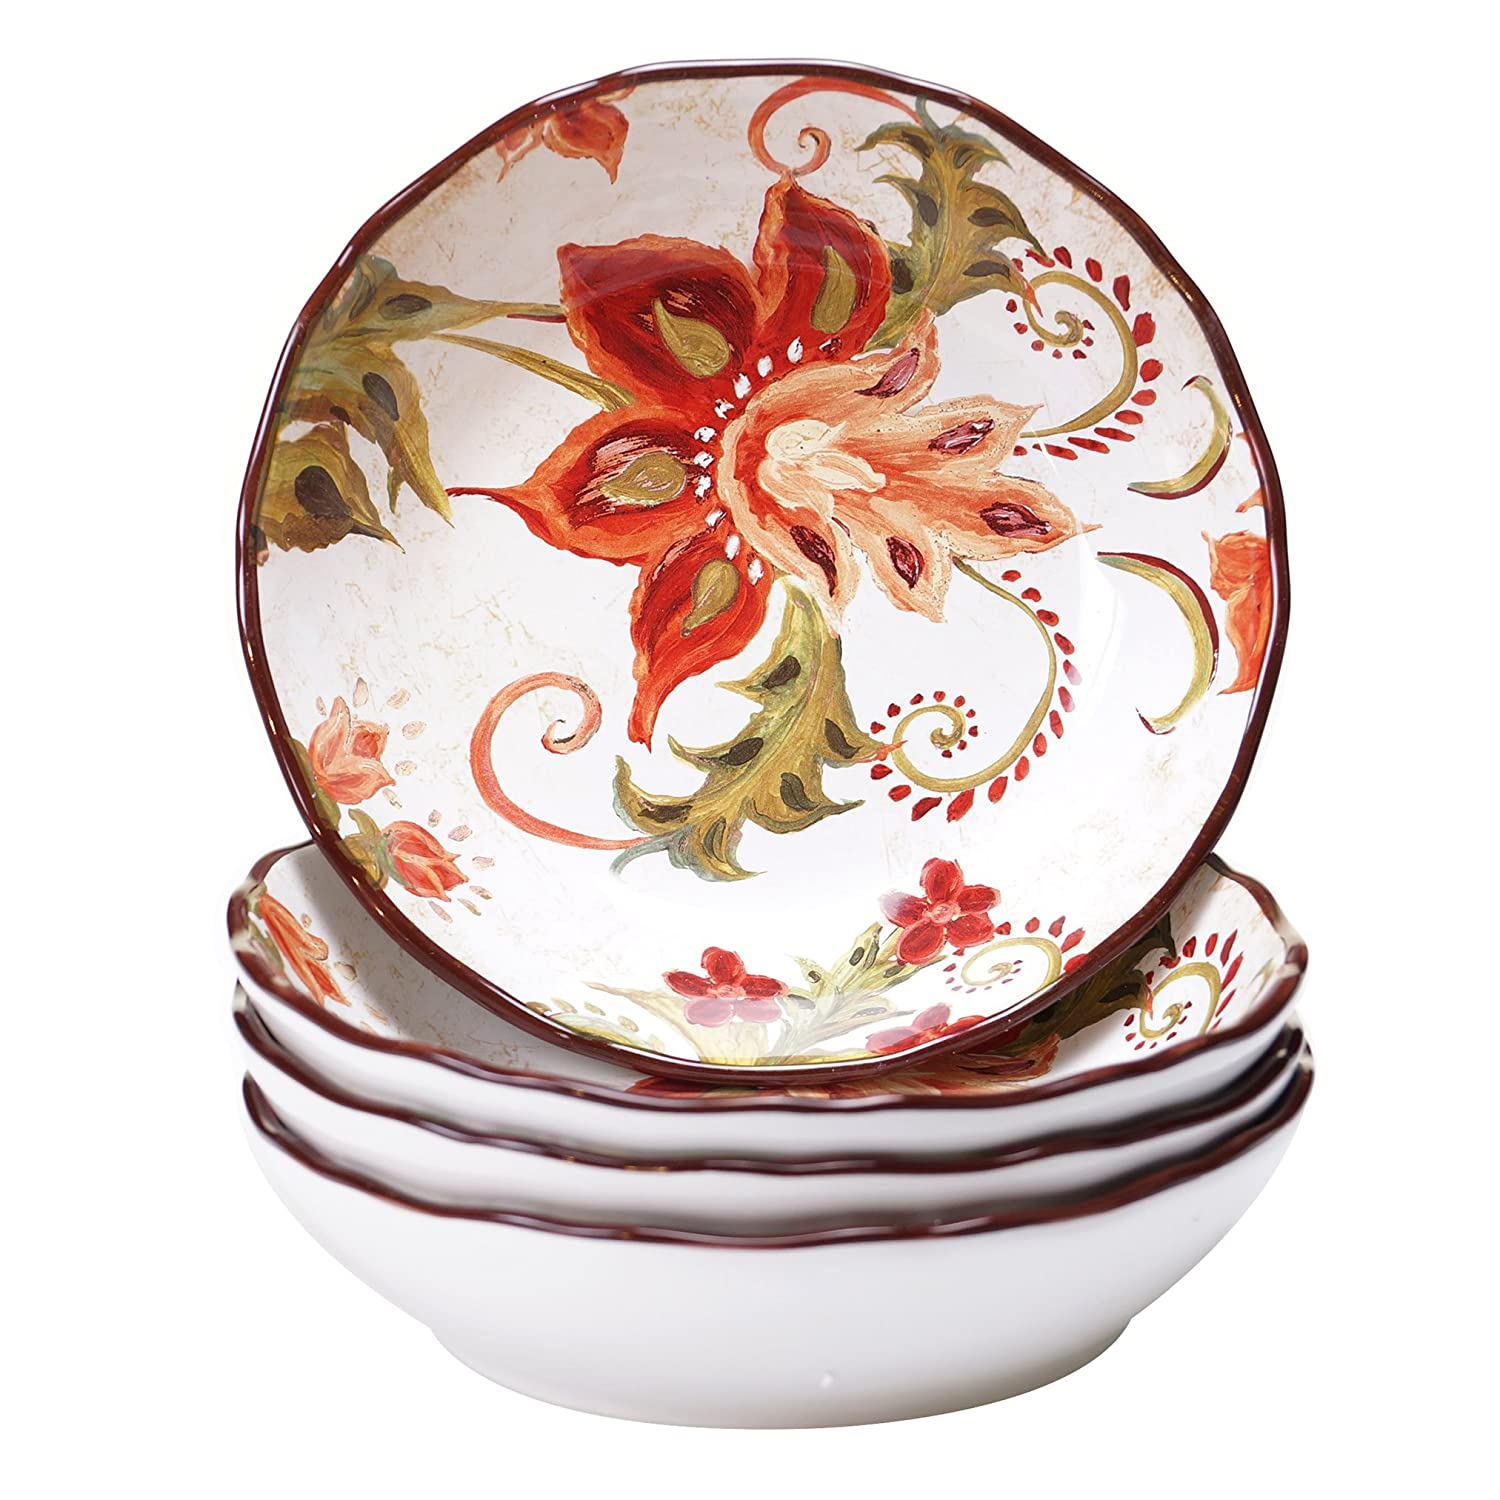 Certified International 25827SET/4 Spice Flowers Soup/Pasta Bowl (Set of 4), 8-Inch, Multicolor